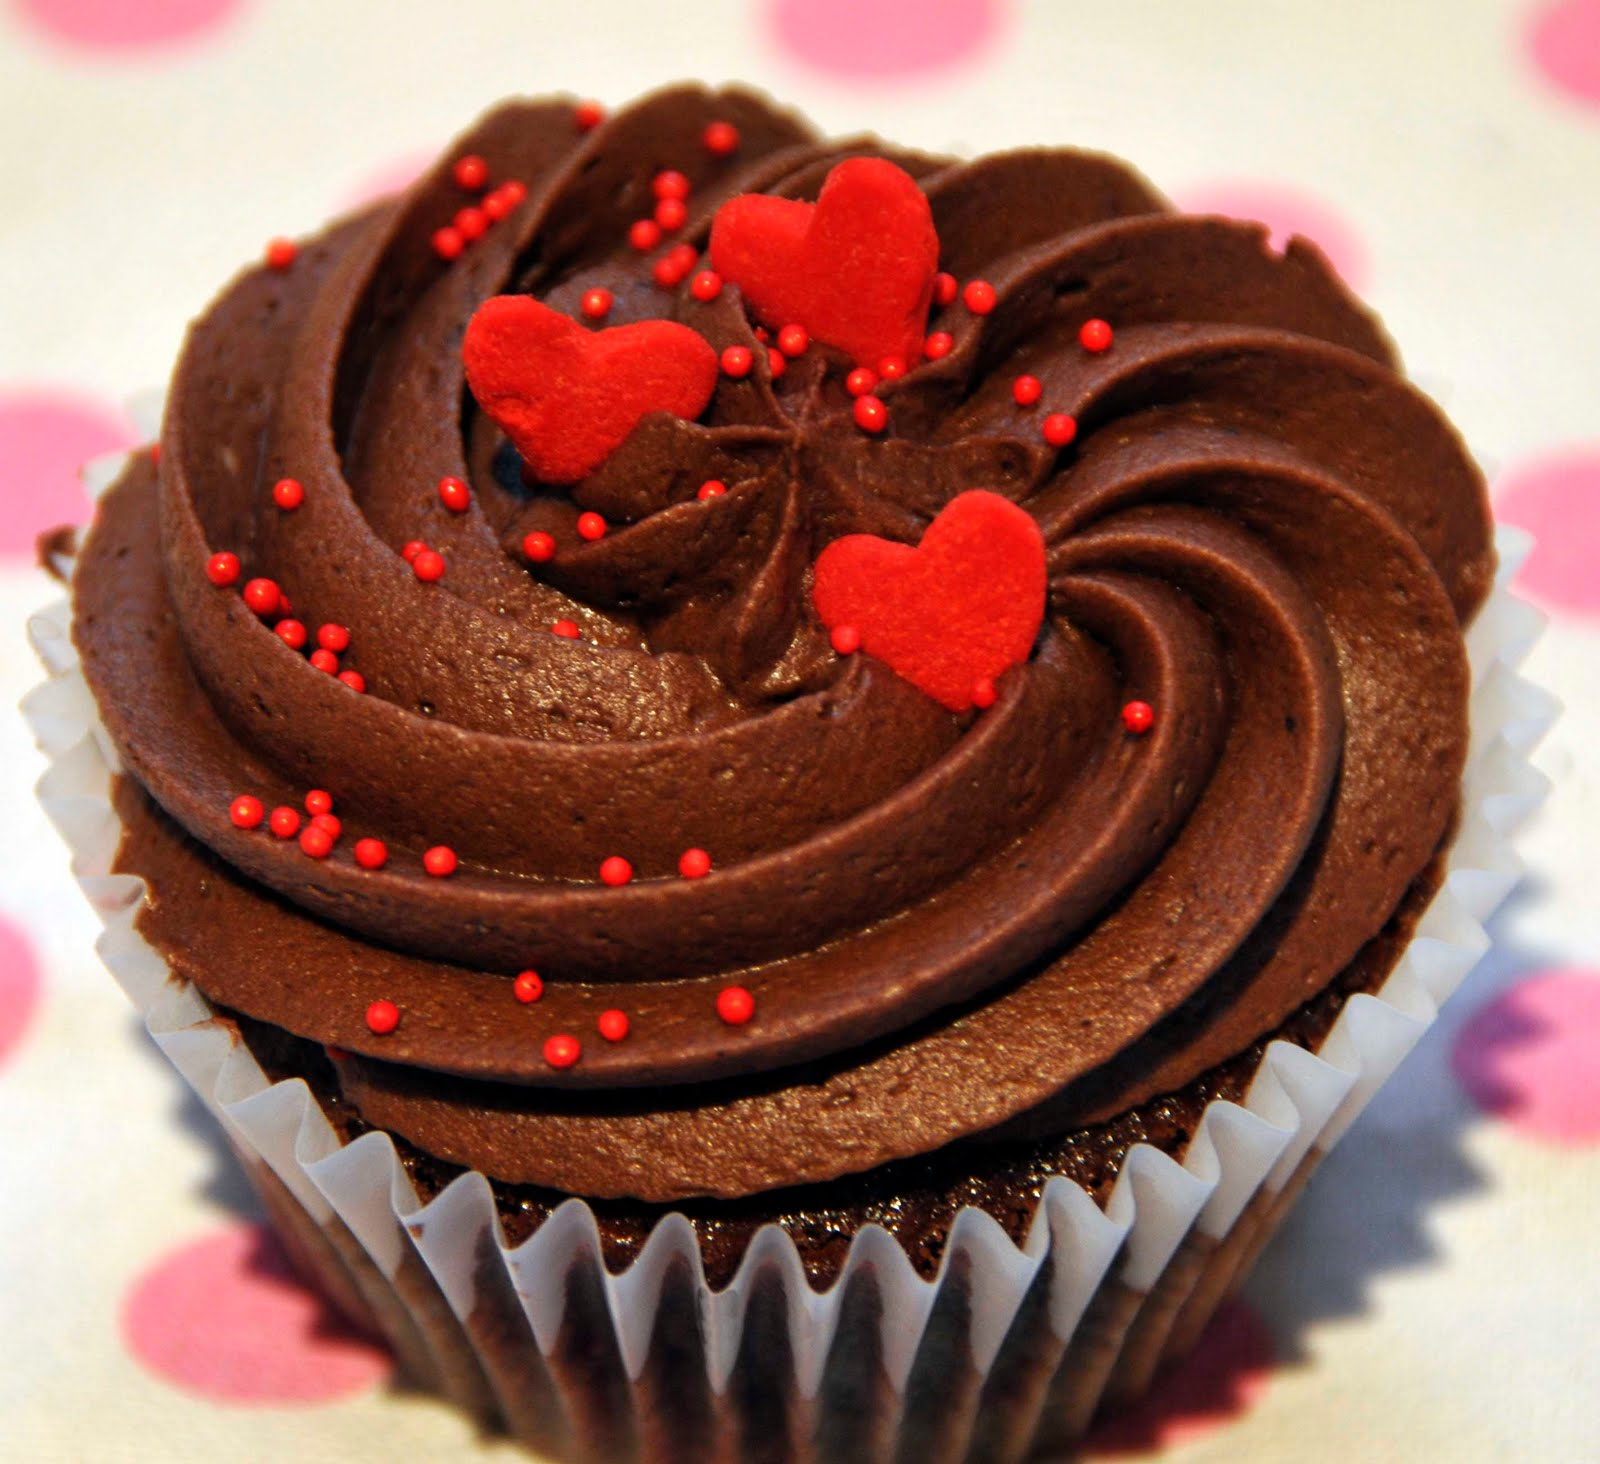 13 Photos of P Ictures Of Valentine's Cupcakes